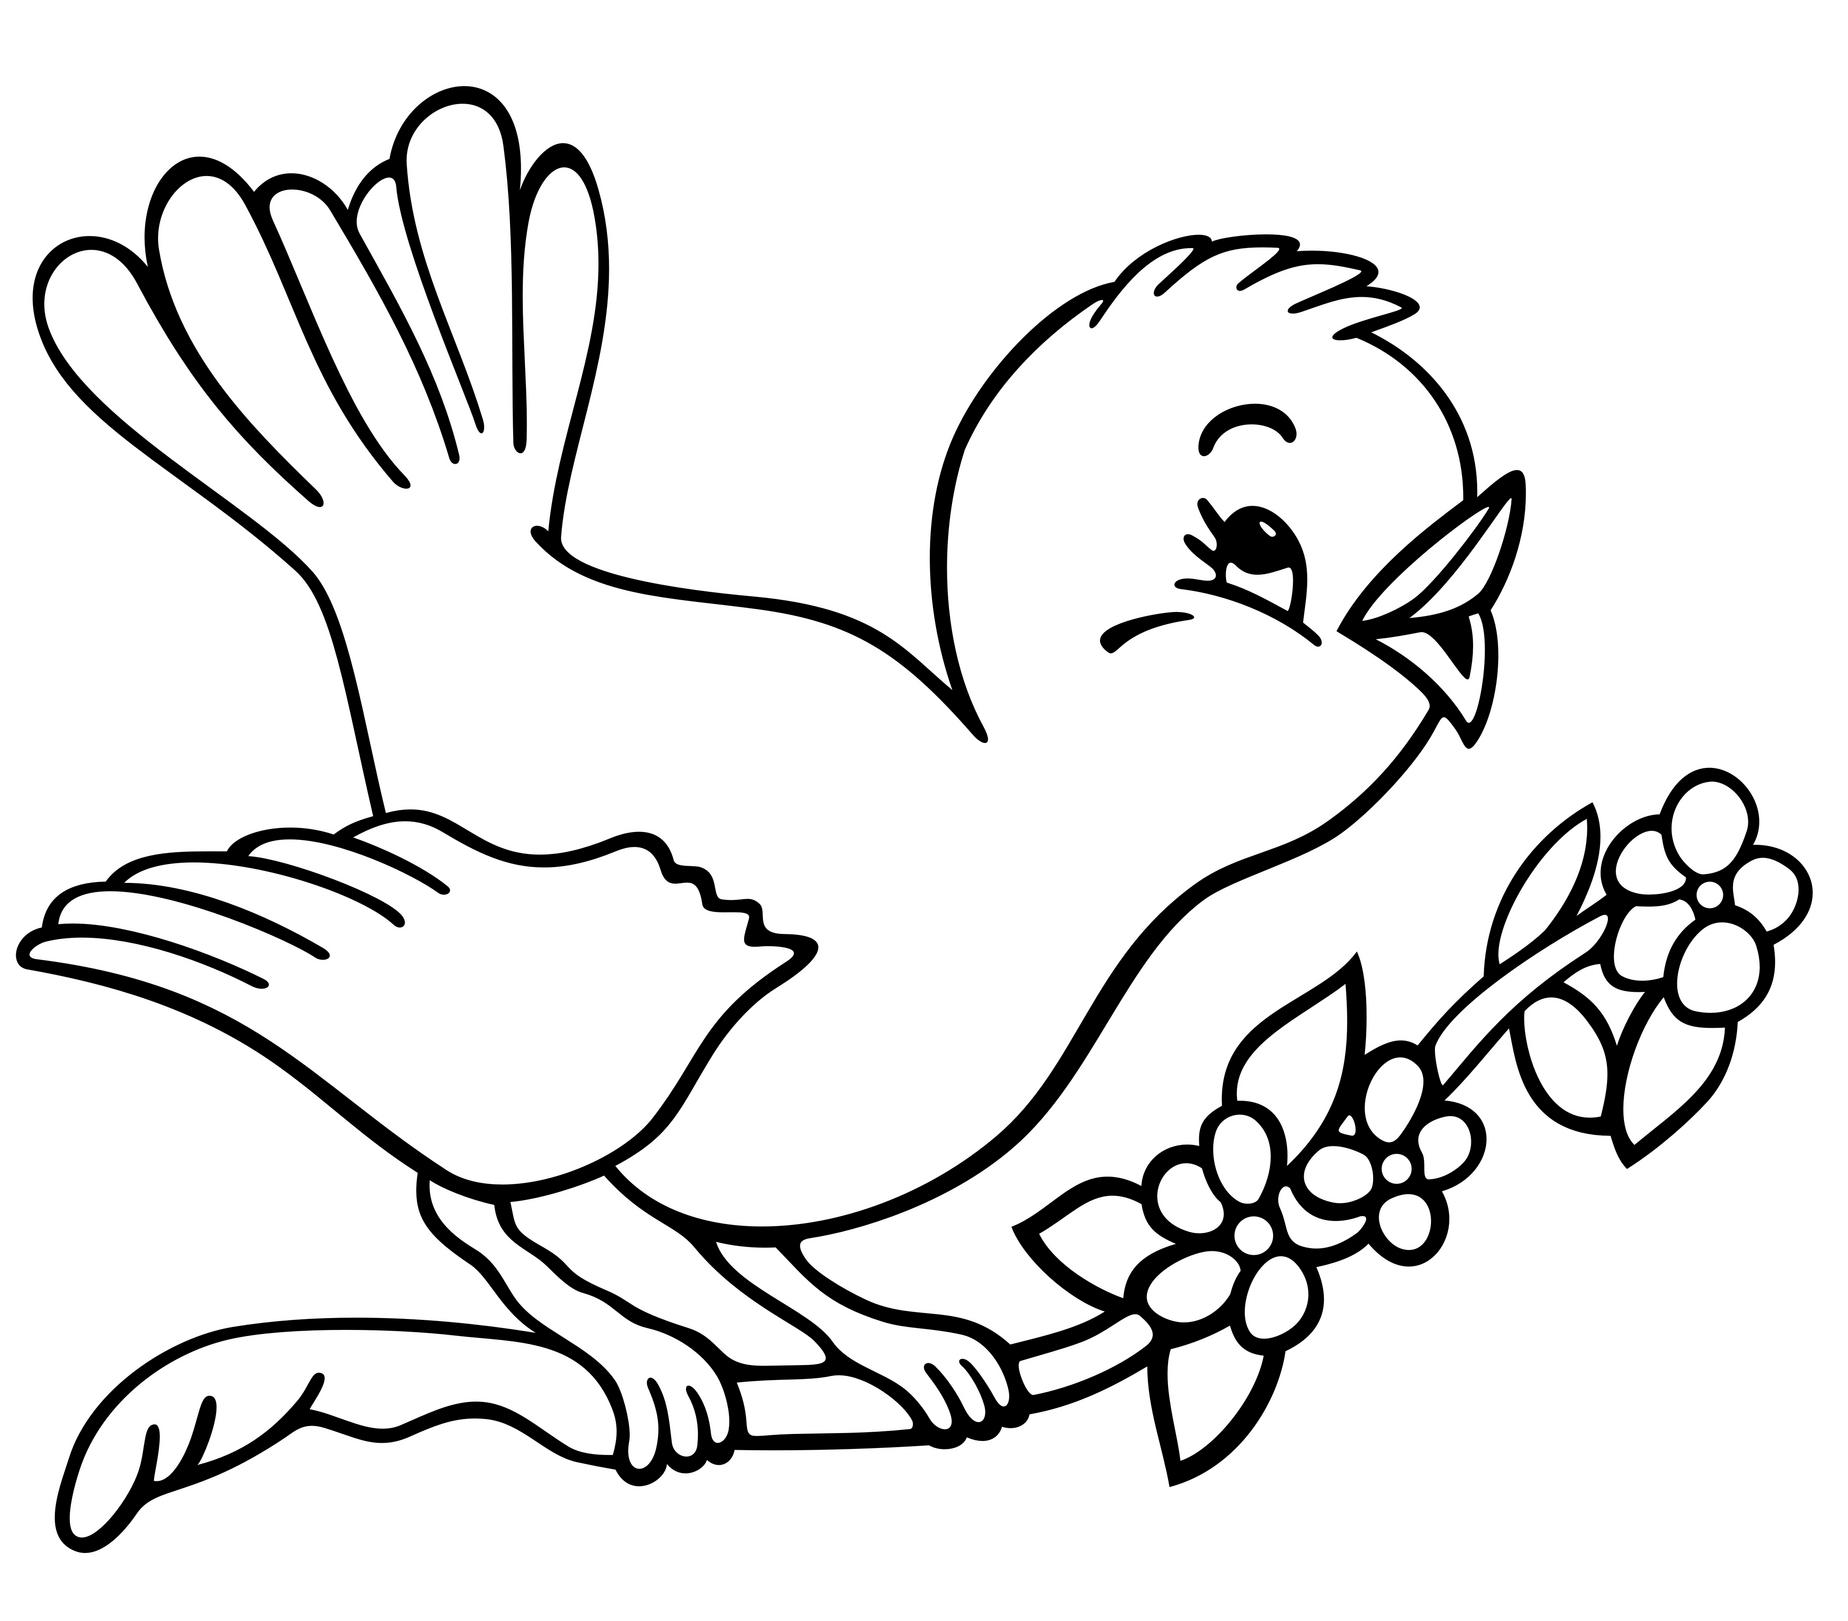 coloring book bird pages - photo#1